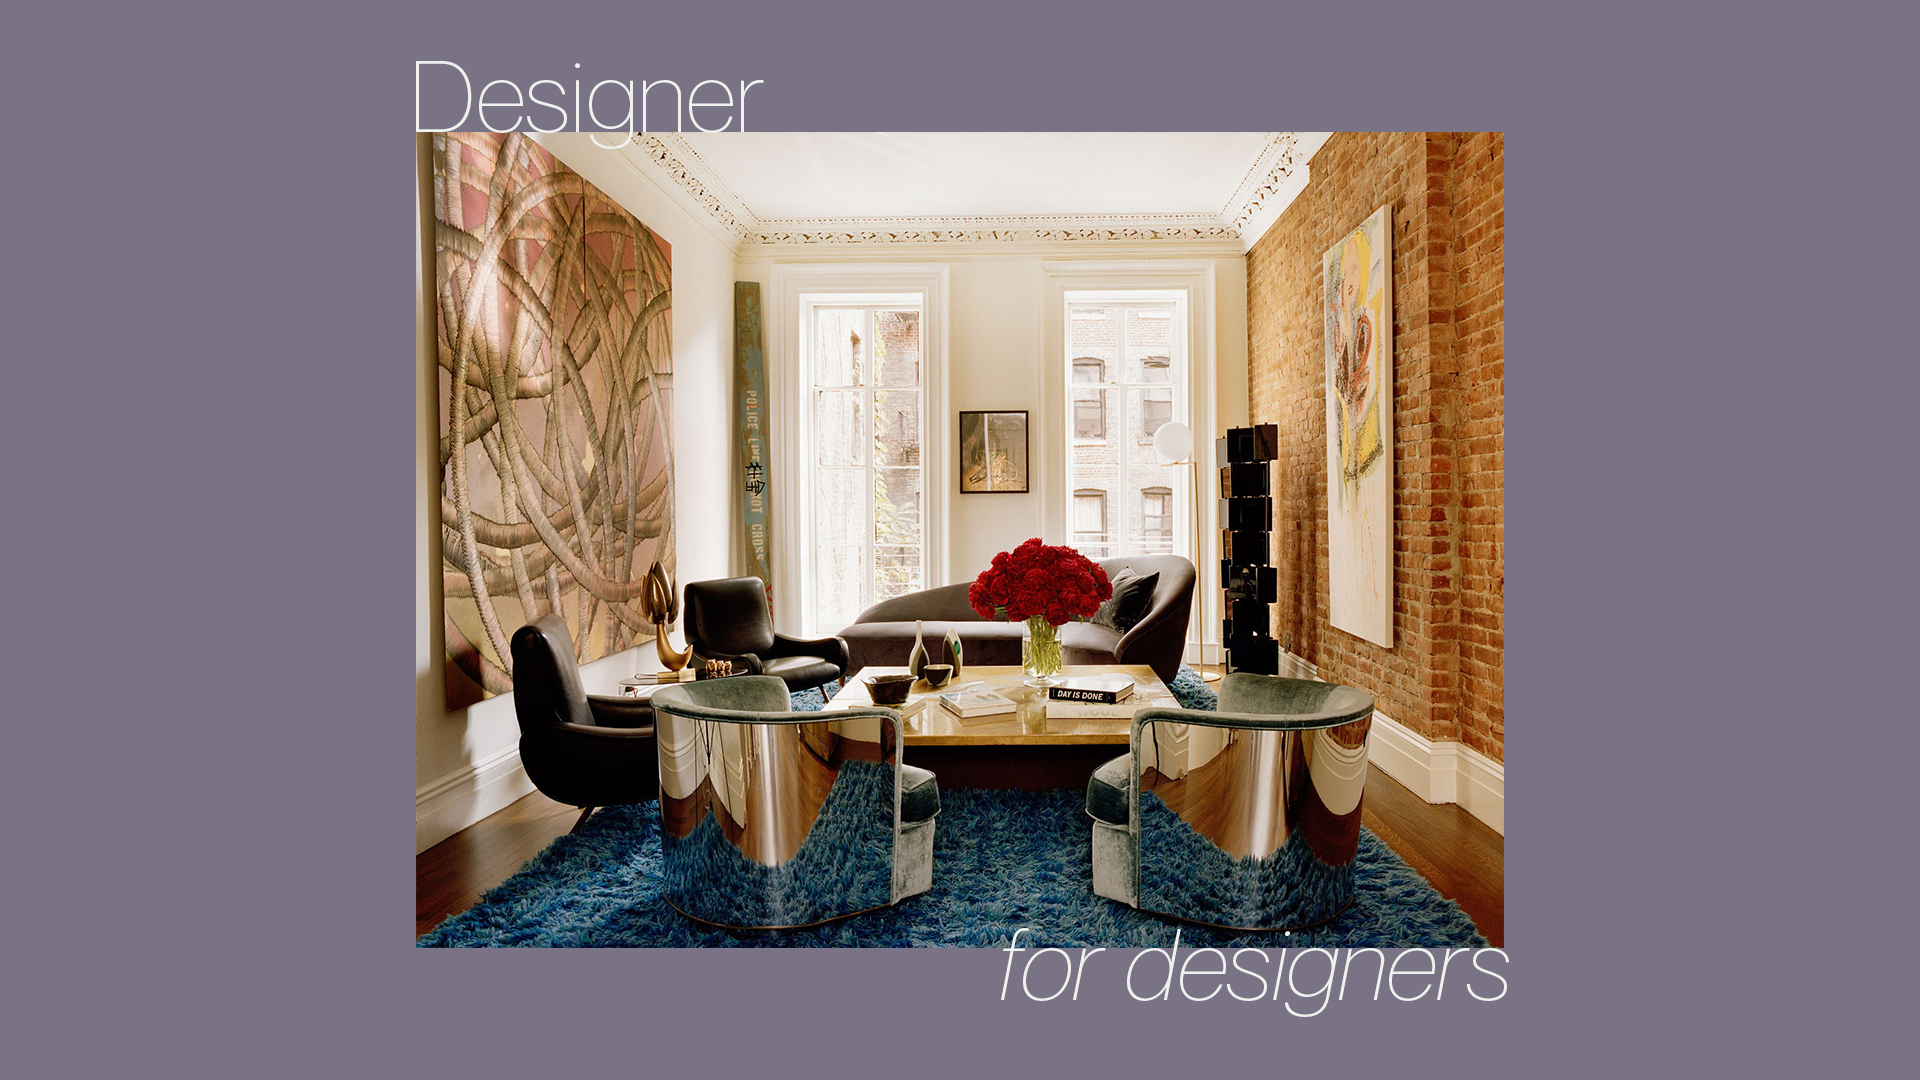 Interior designed and curated by Melissa A. Bowers, Designer for Designers